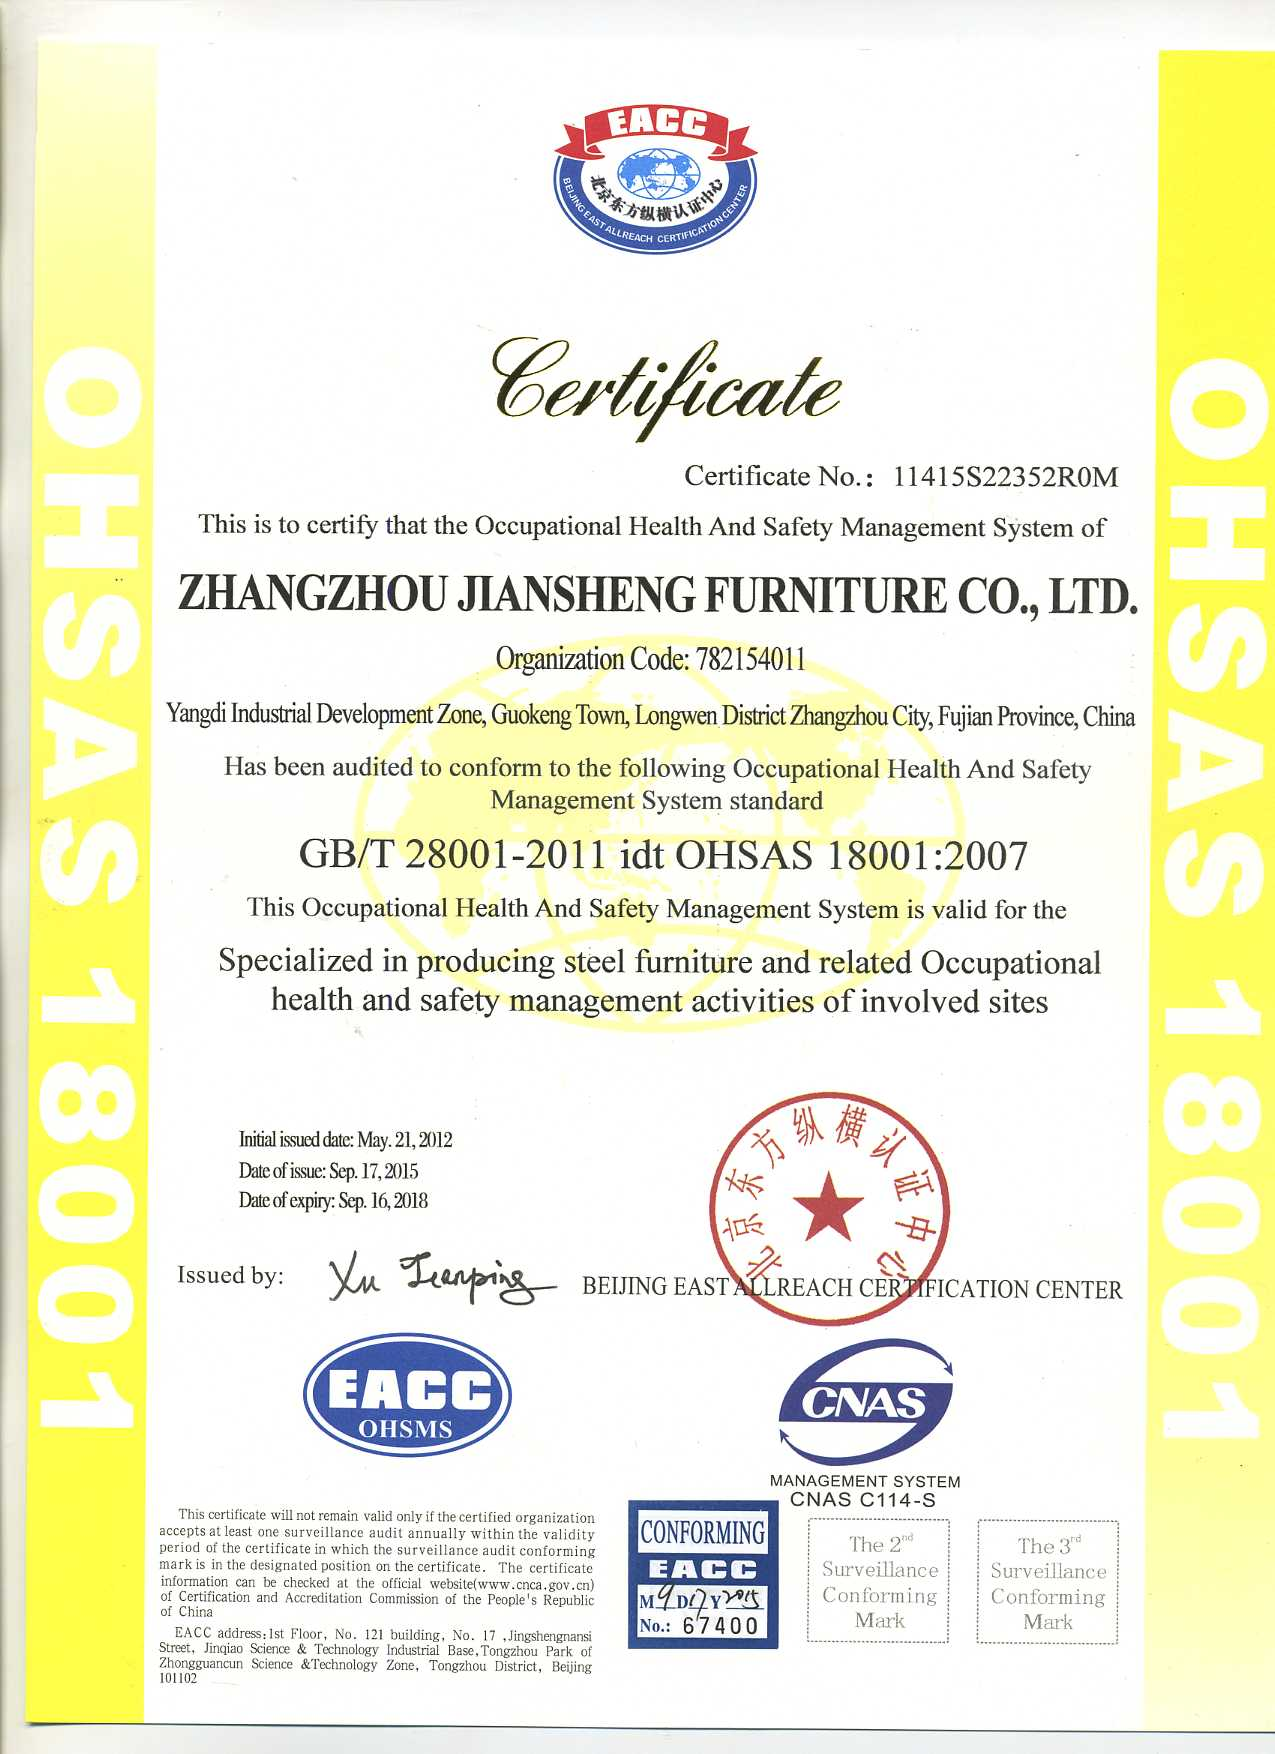 Occupational Health & Safety Managment System